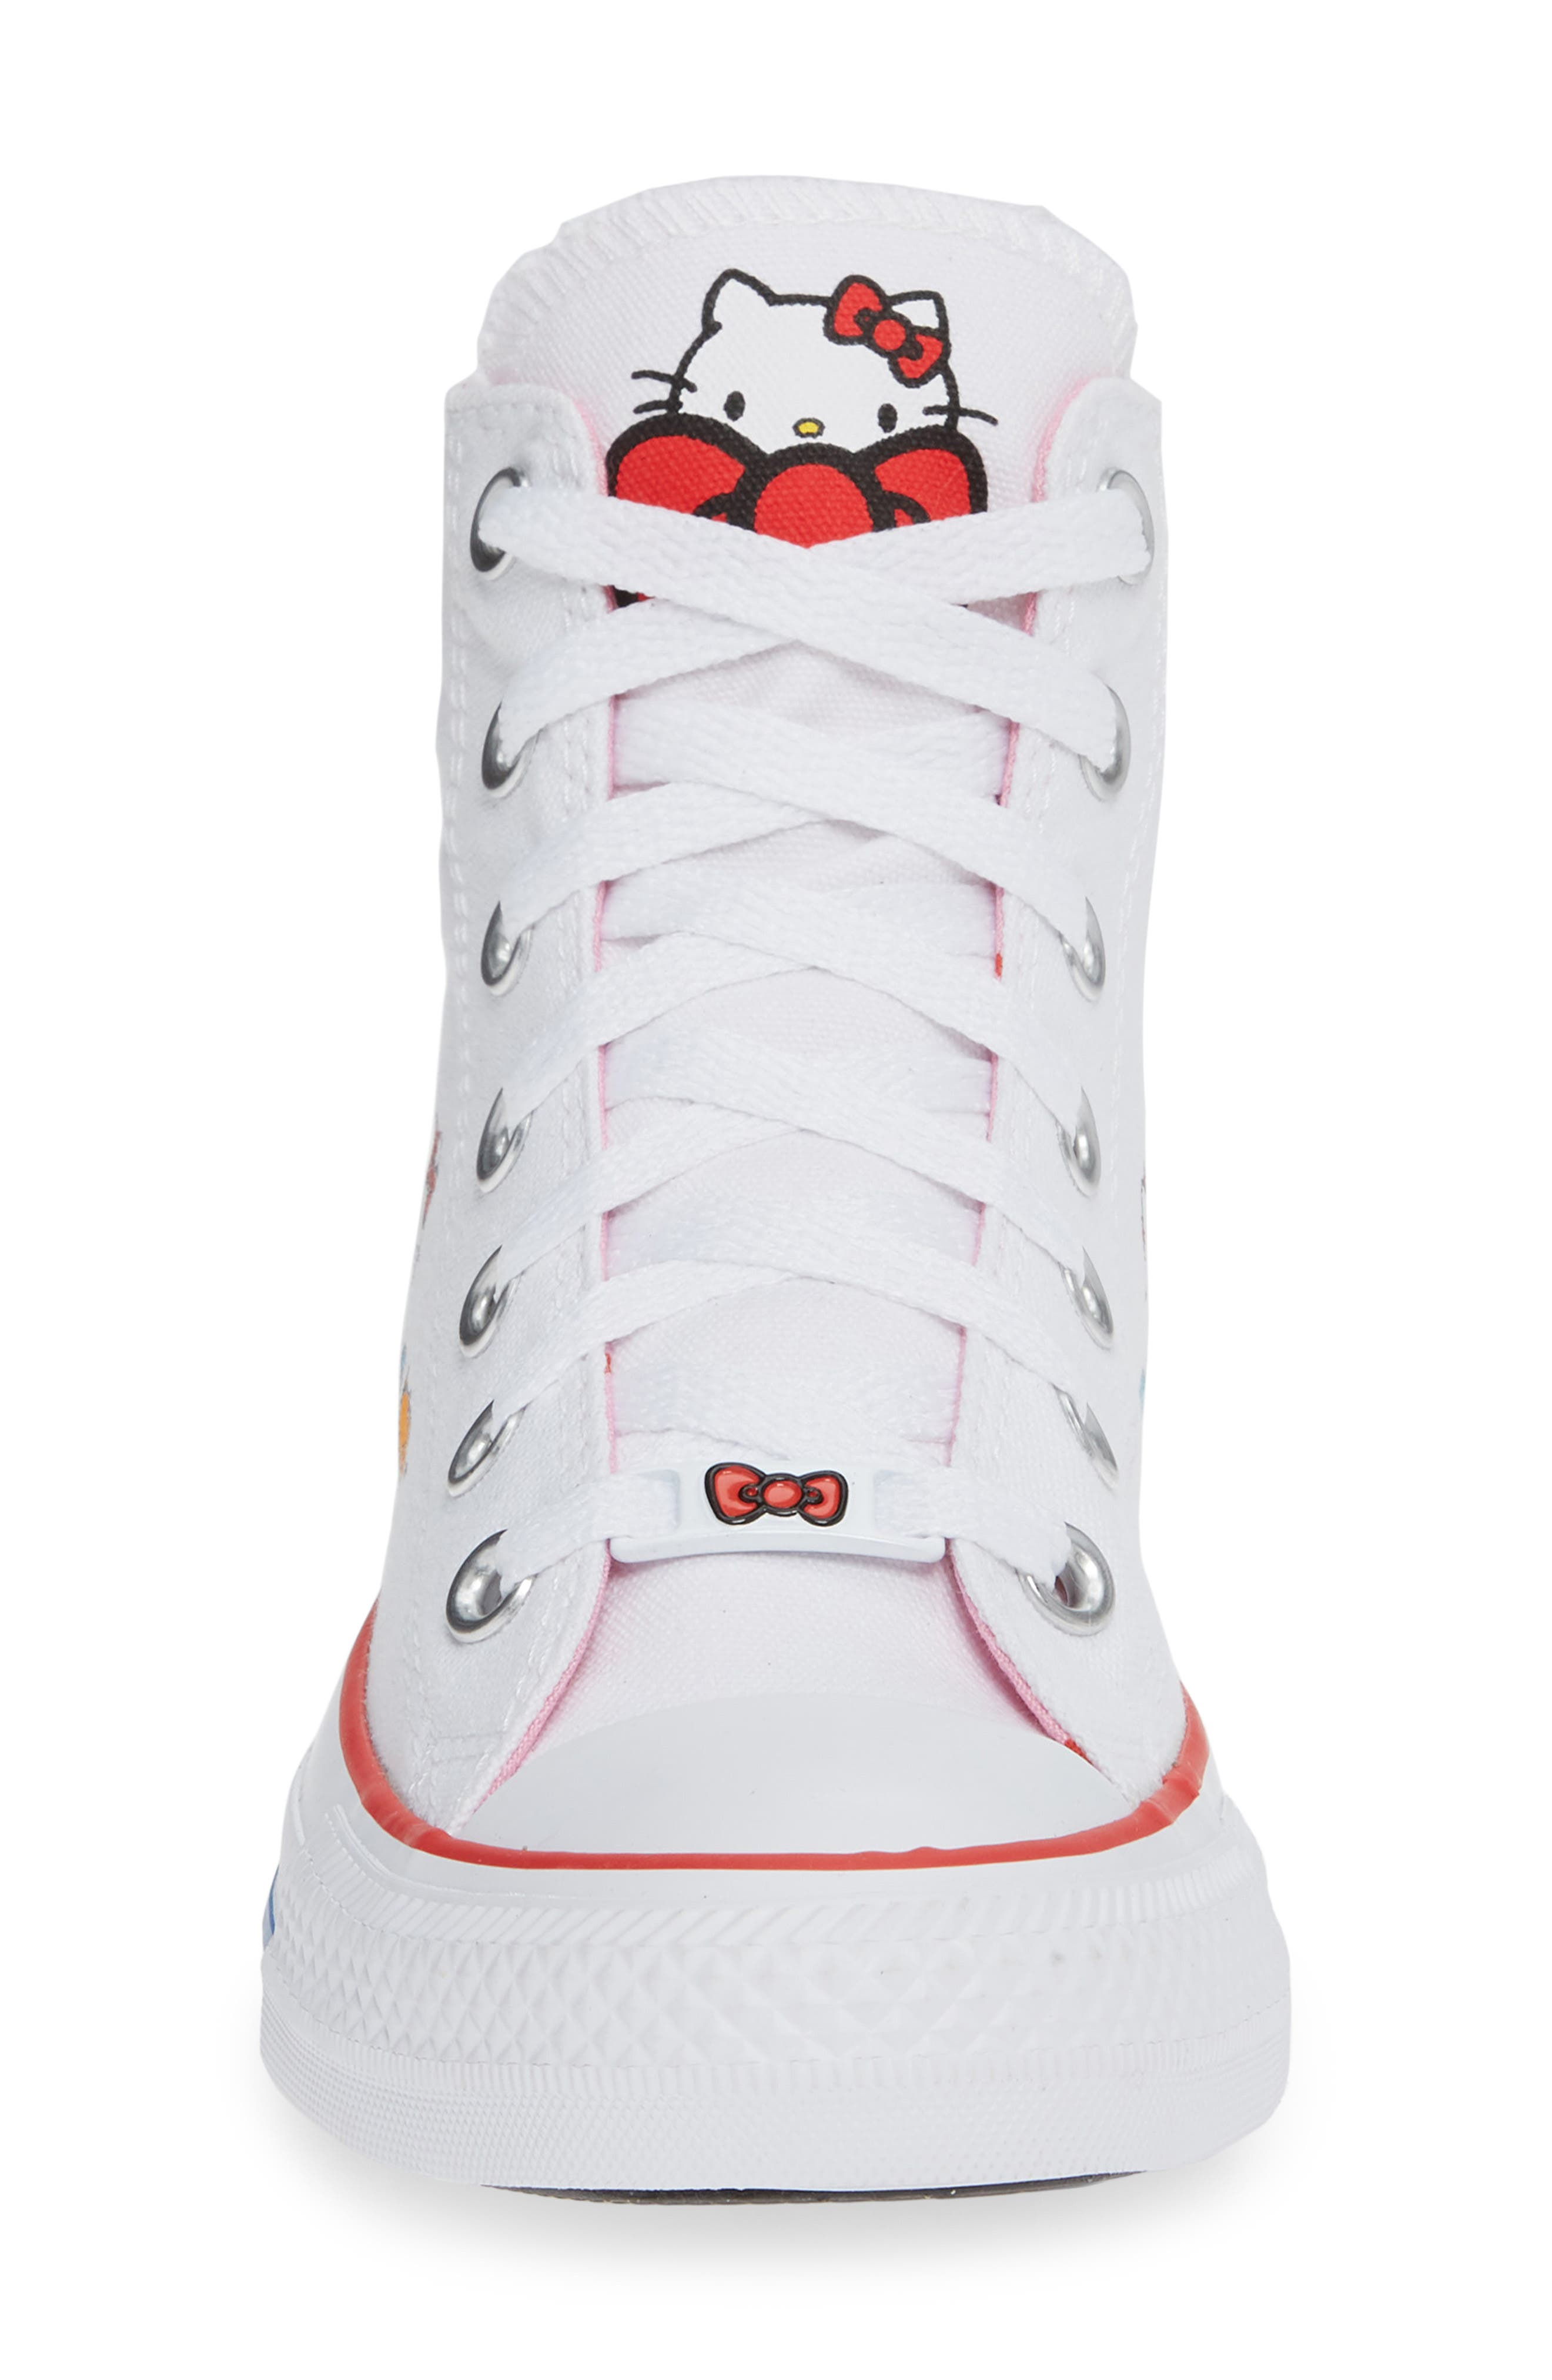 Chuck Taylor<sup>®</sup> All Star<sup>®</sup> Hello Kitty High Top Sneaker,                             Alternate thumbnail 4, color,                             102